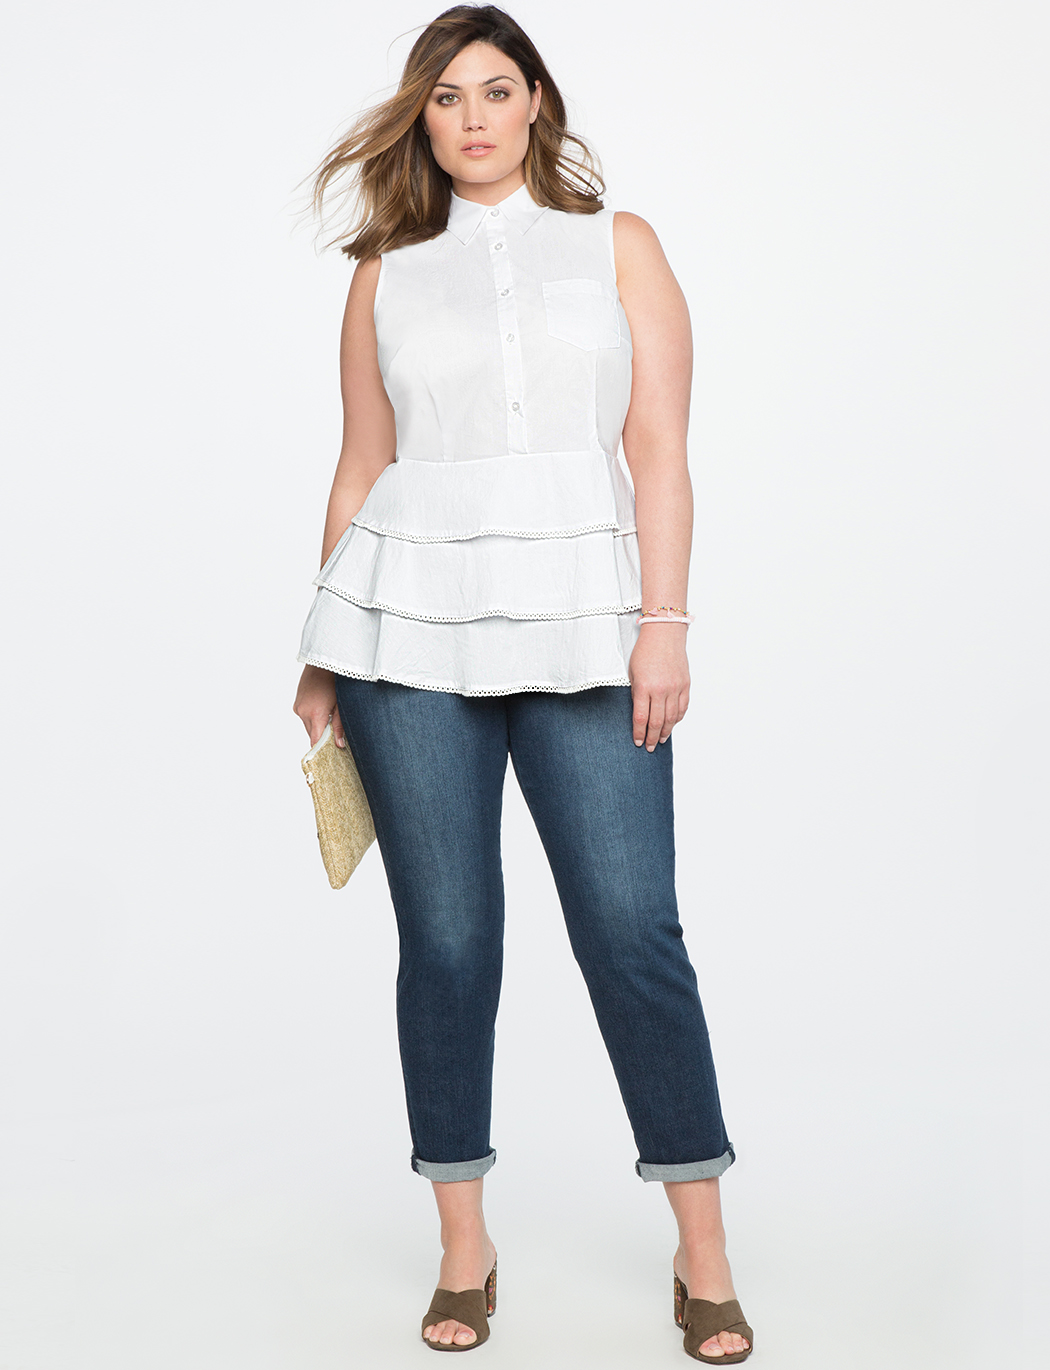 61b9589e2957b7 Button Up Peplum Top with Lace Trim